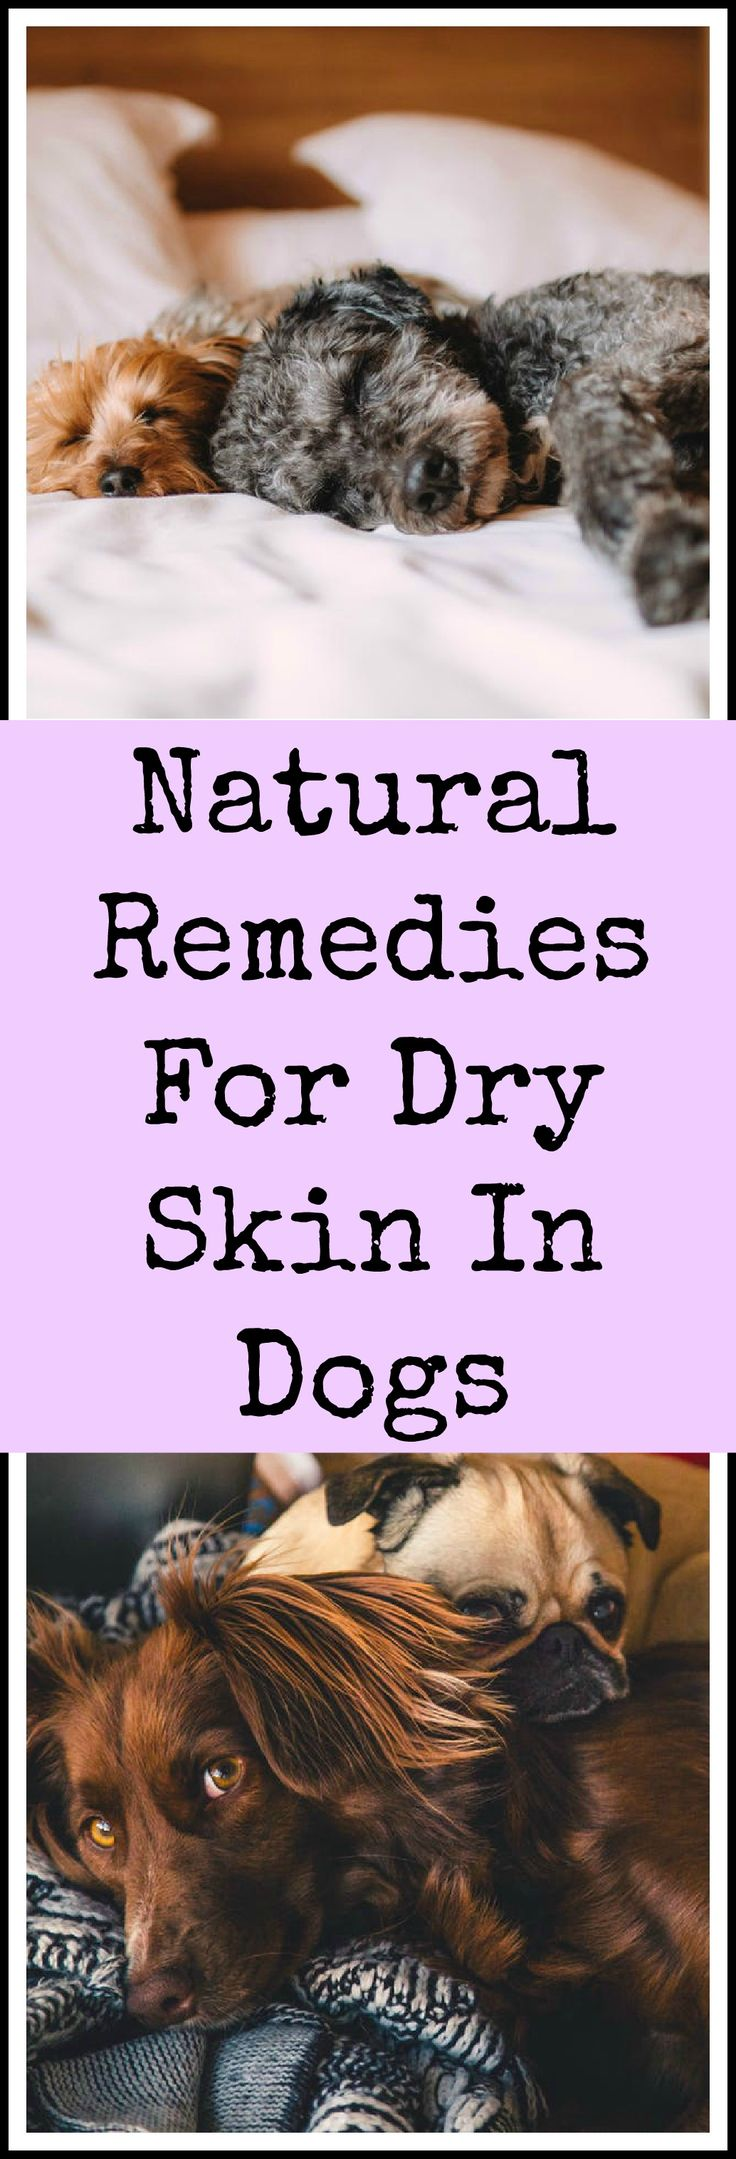 Natural remedies for dogs with dry skin.